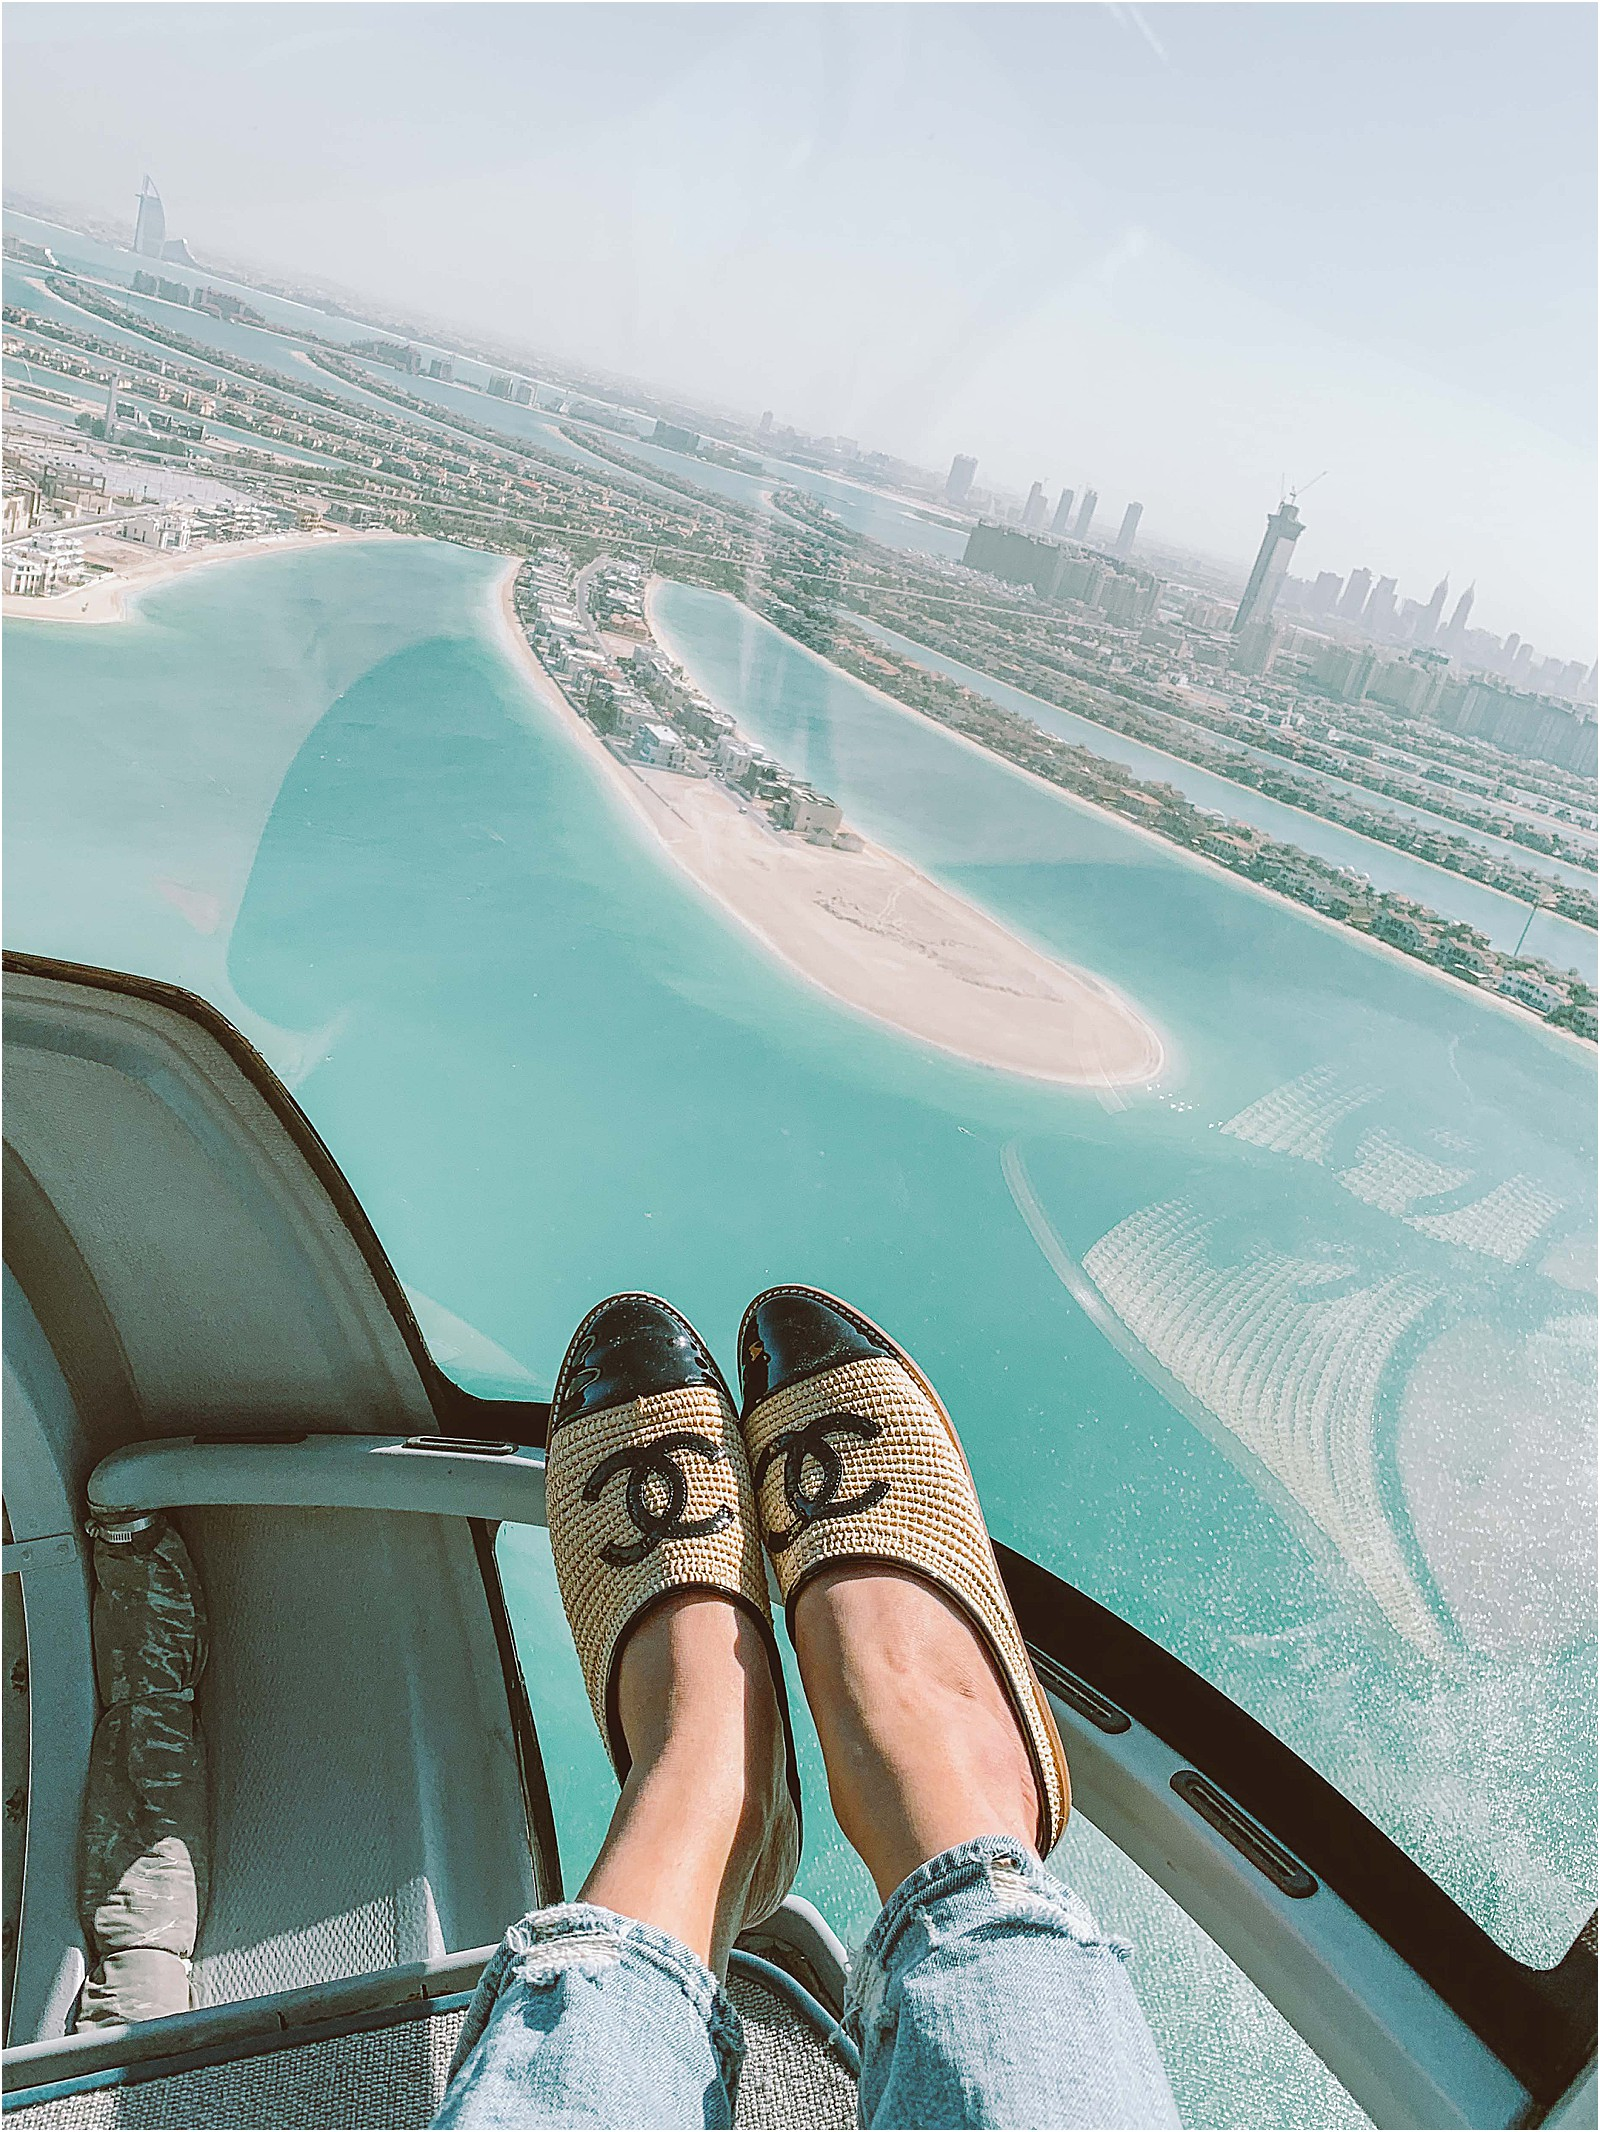 Dubai-family-travel-guide-flyhigh-helicopter